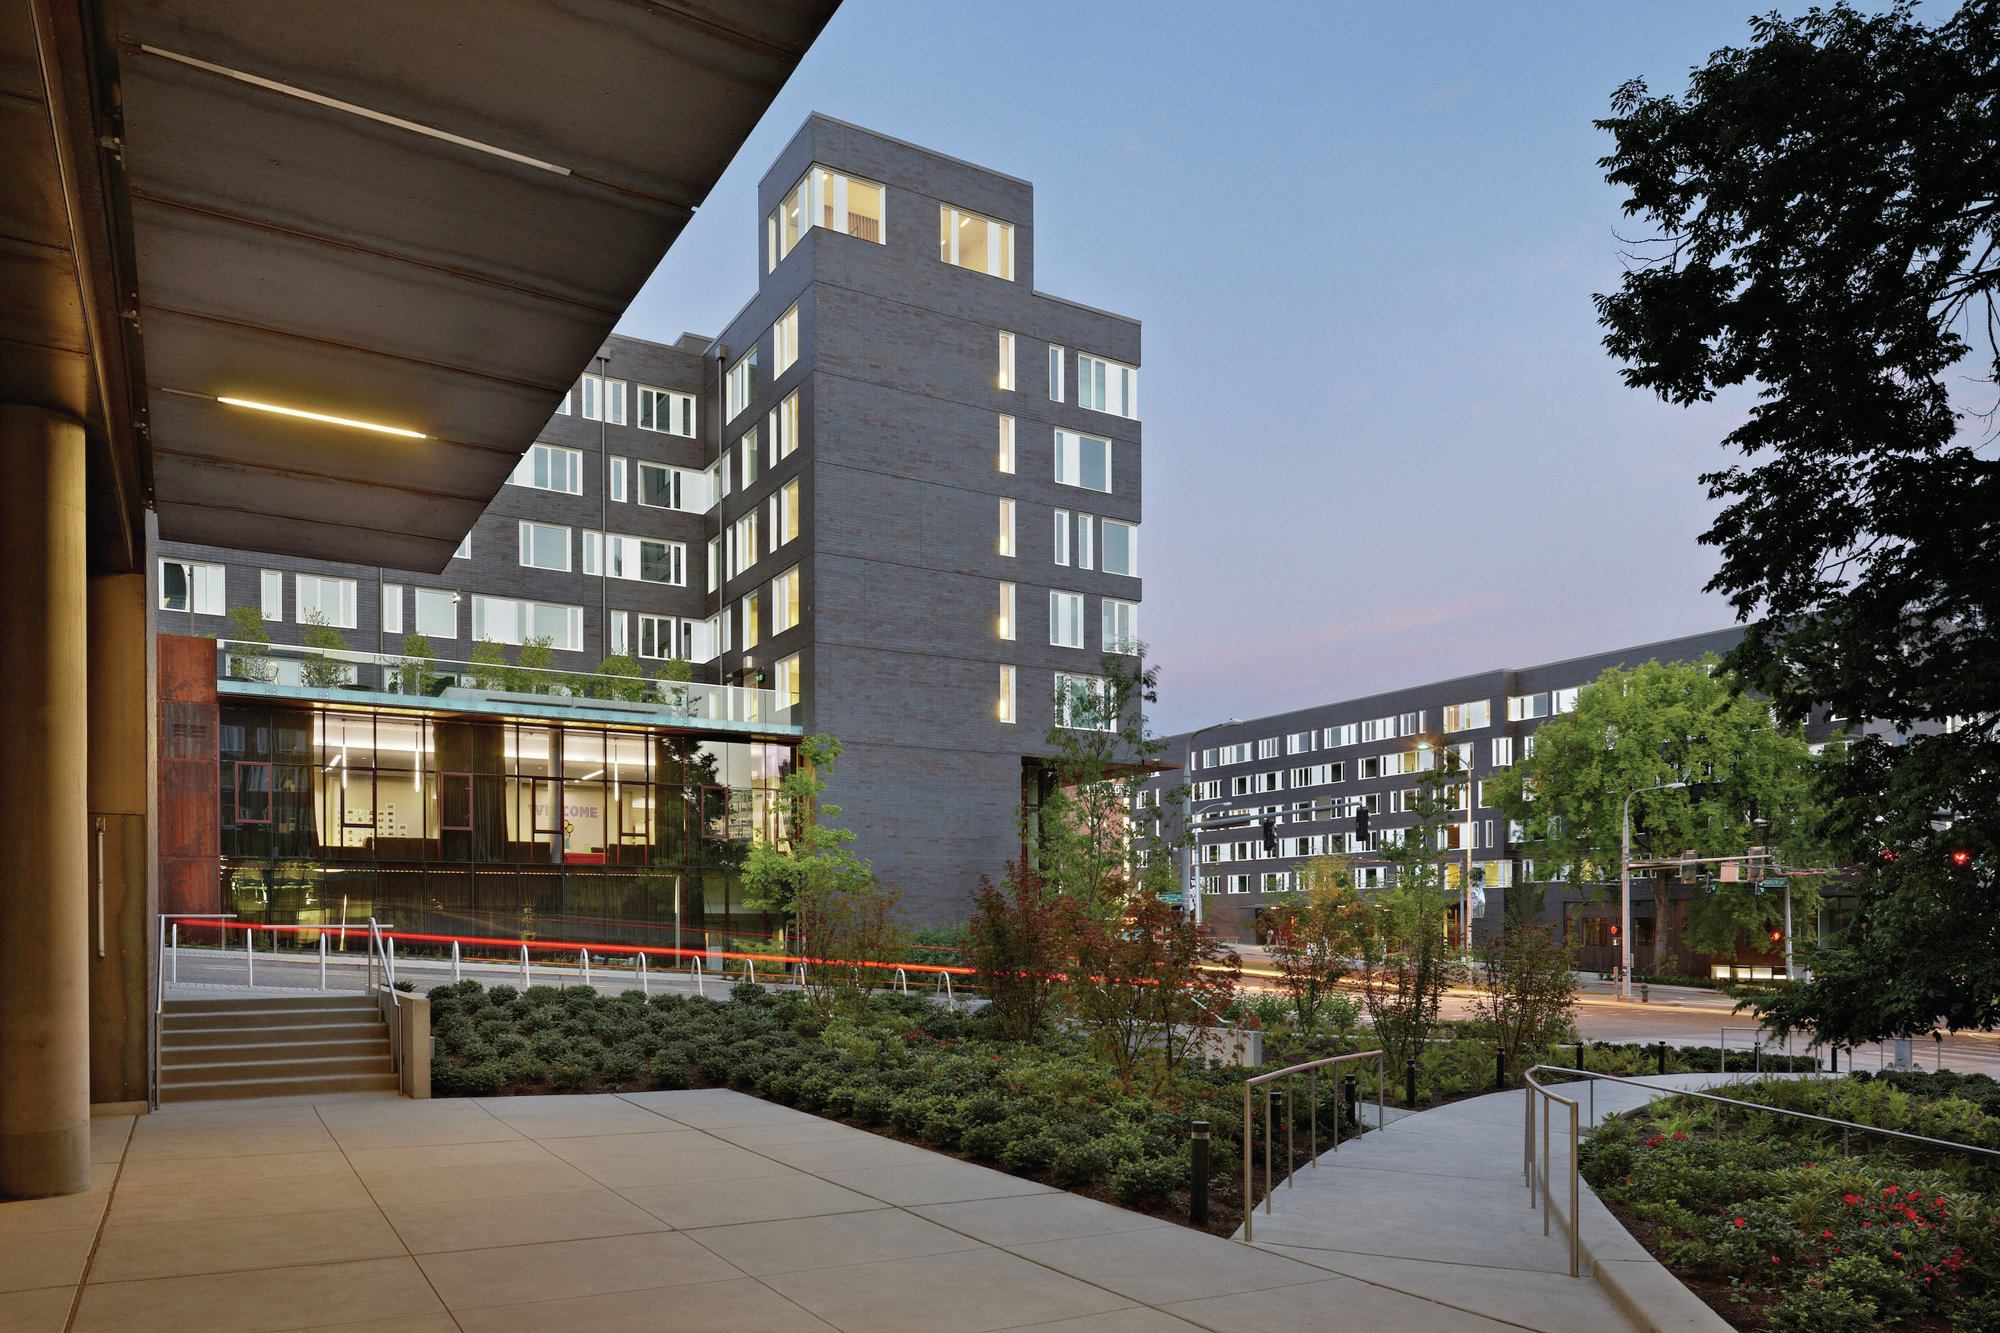 University Of Washington West Campus Housing Phase One